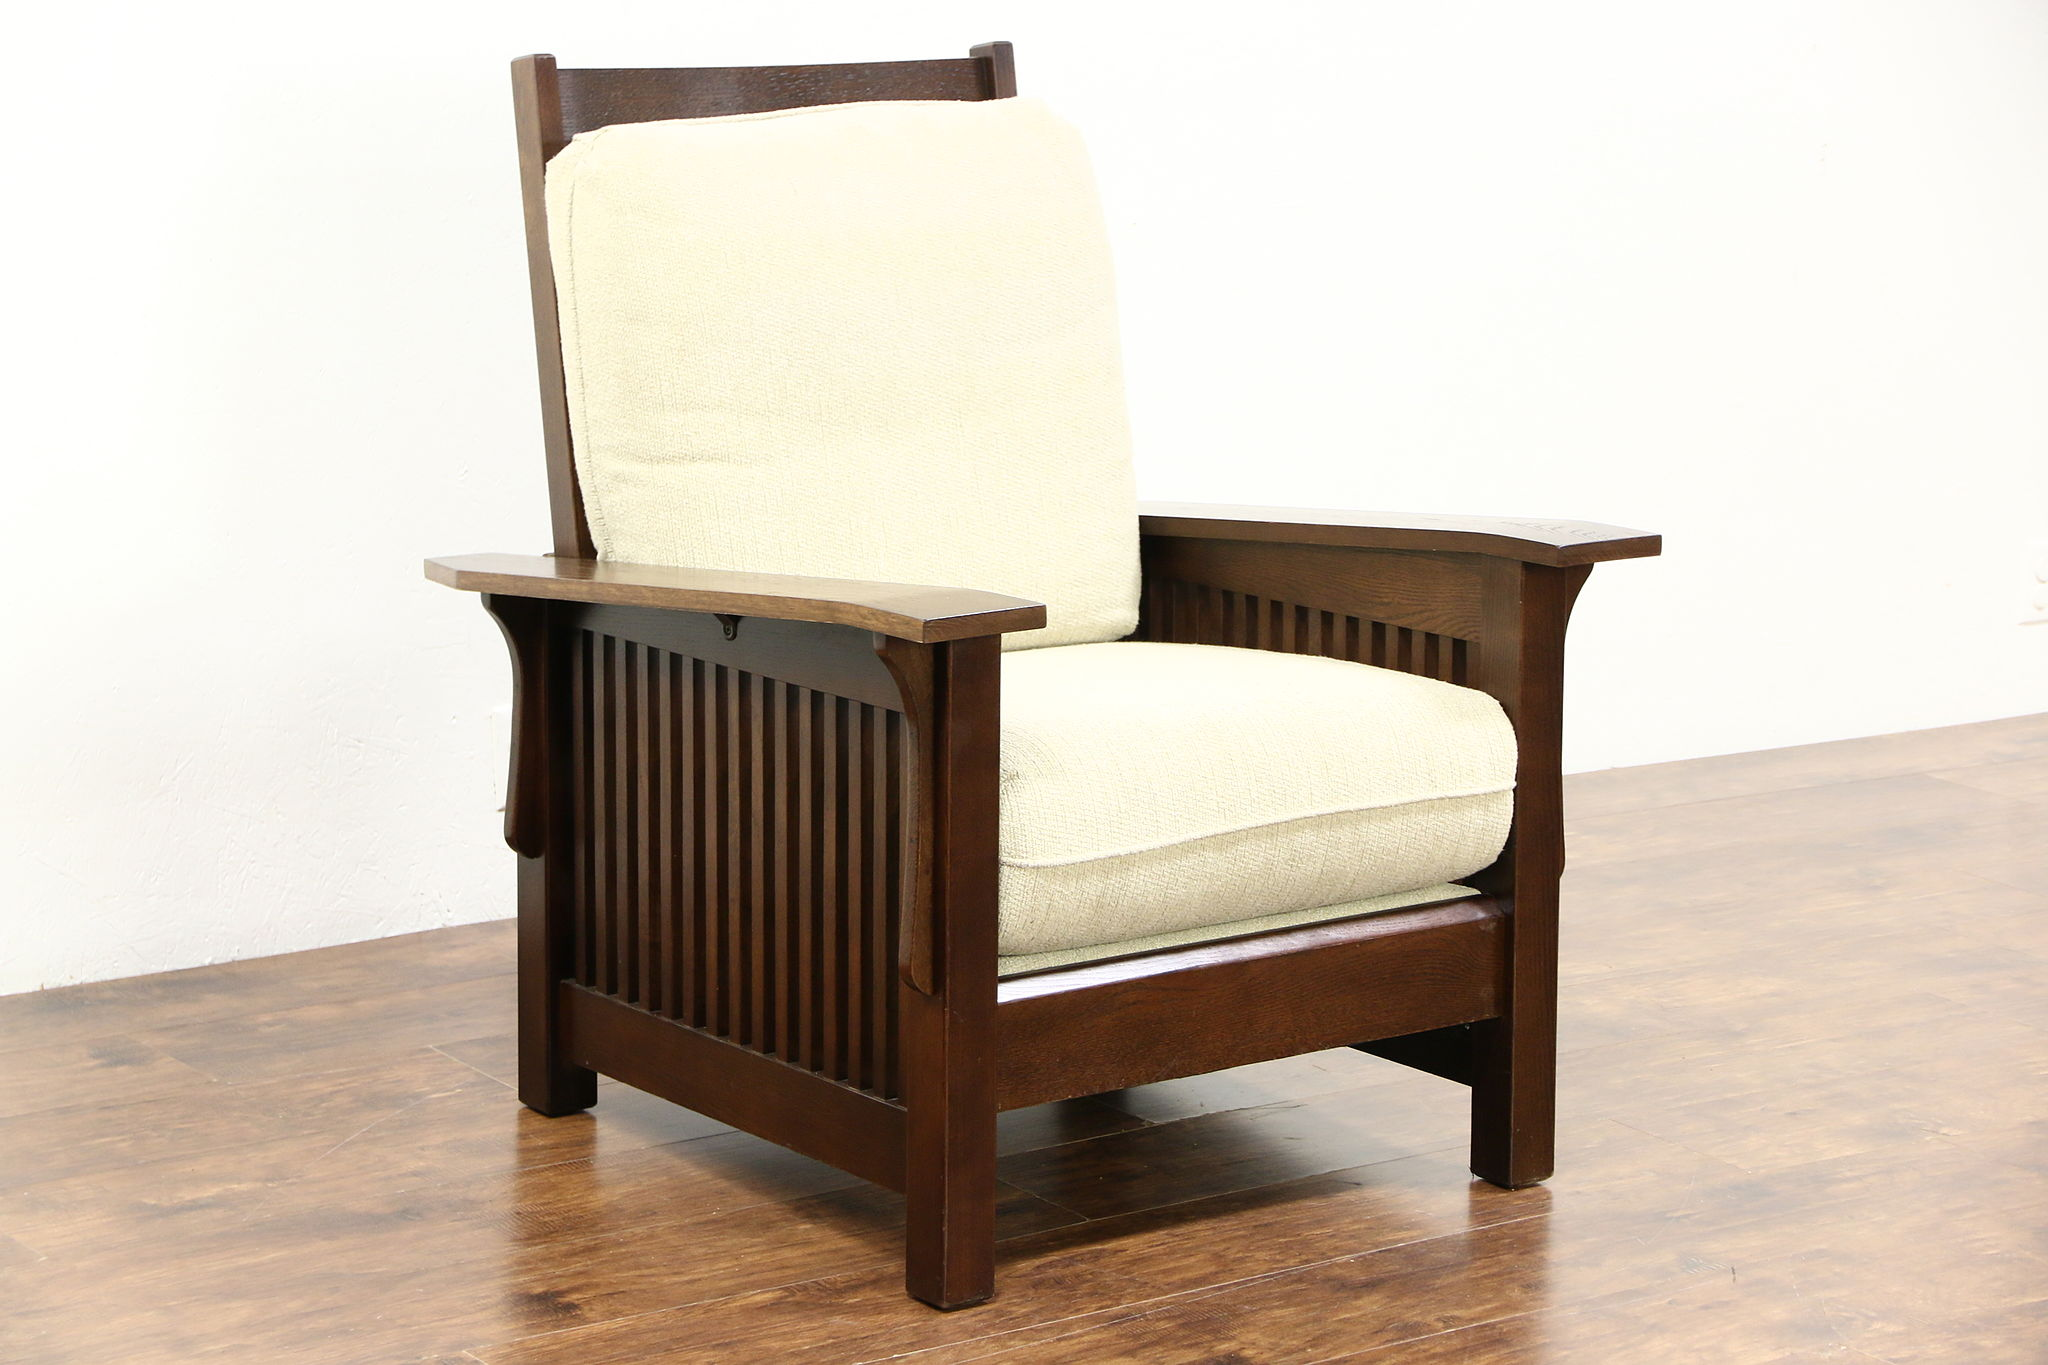 Arts u0026 Crafts Mission Oak Vintage Morris Craftsman Recliner Chair ... : craftsman style recliner - islam-shia.org